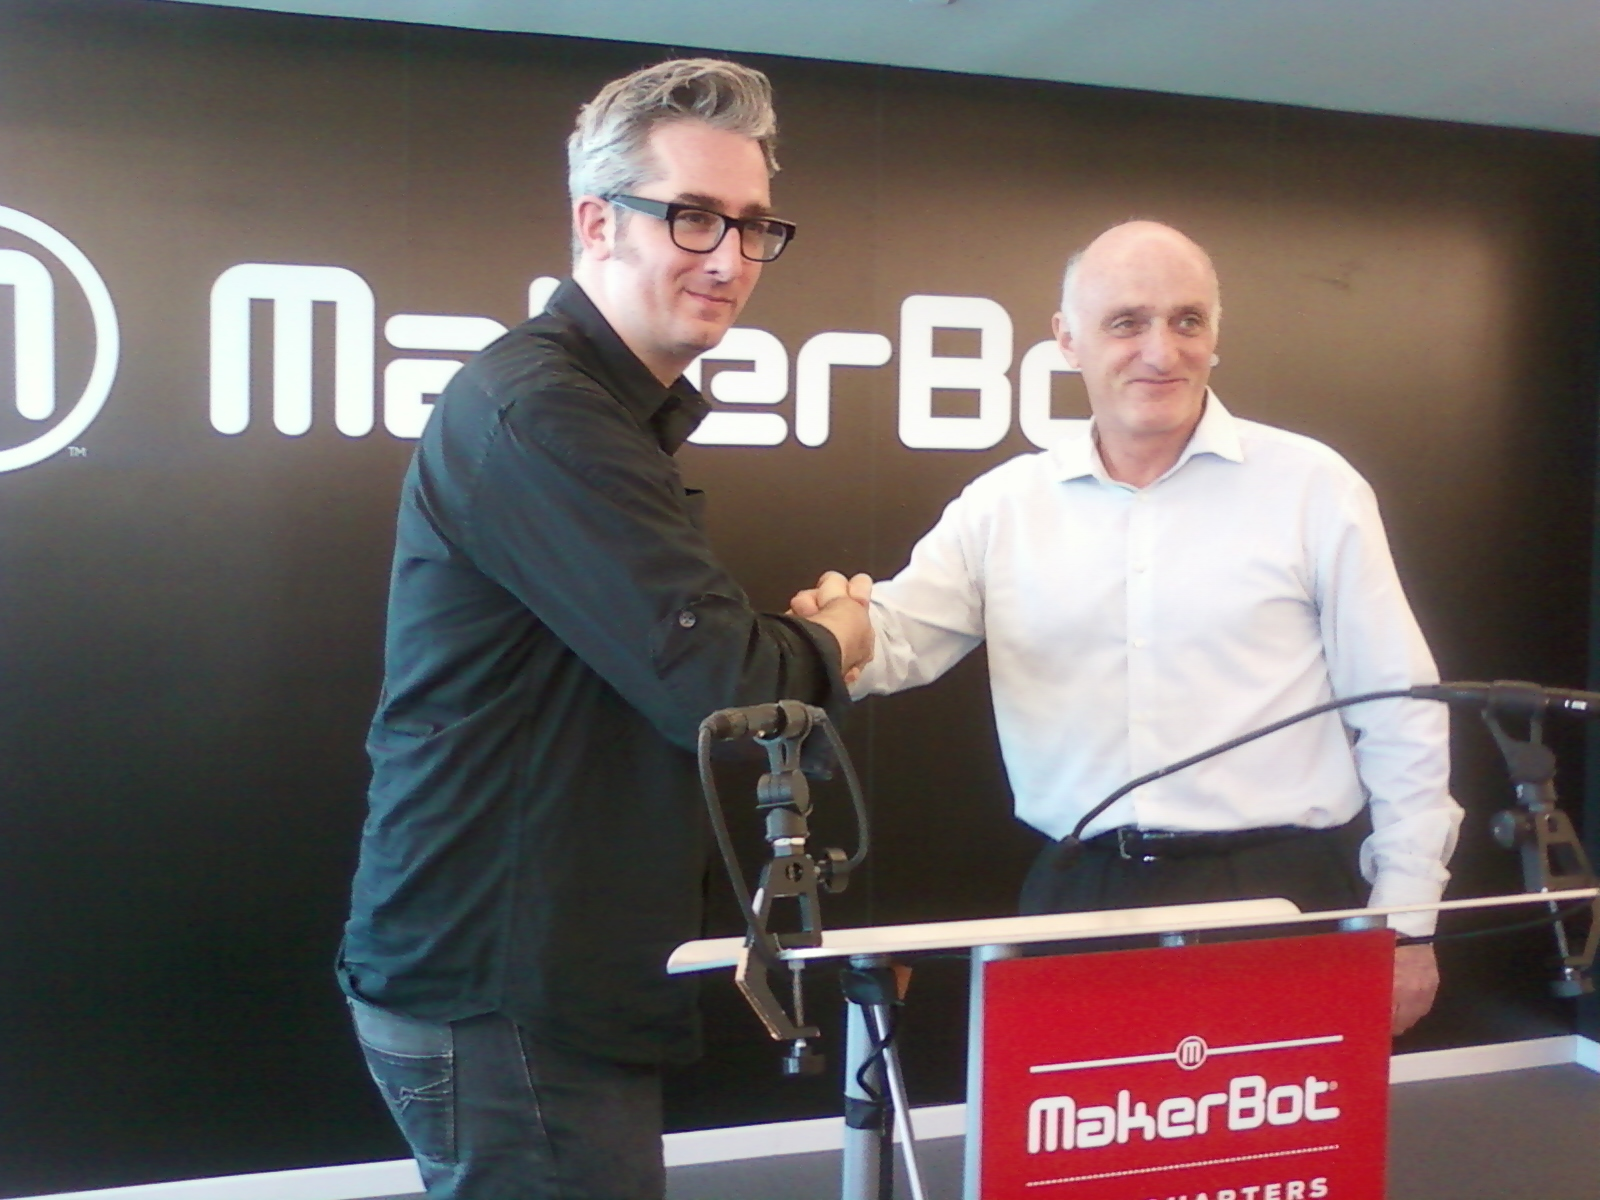 Reactions to the MakerBot – Stratasys Deal